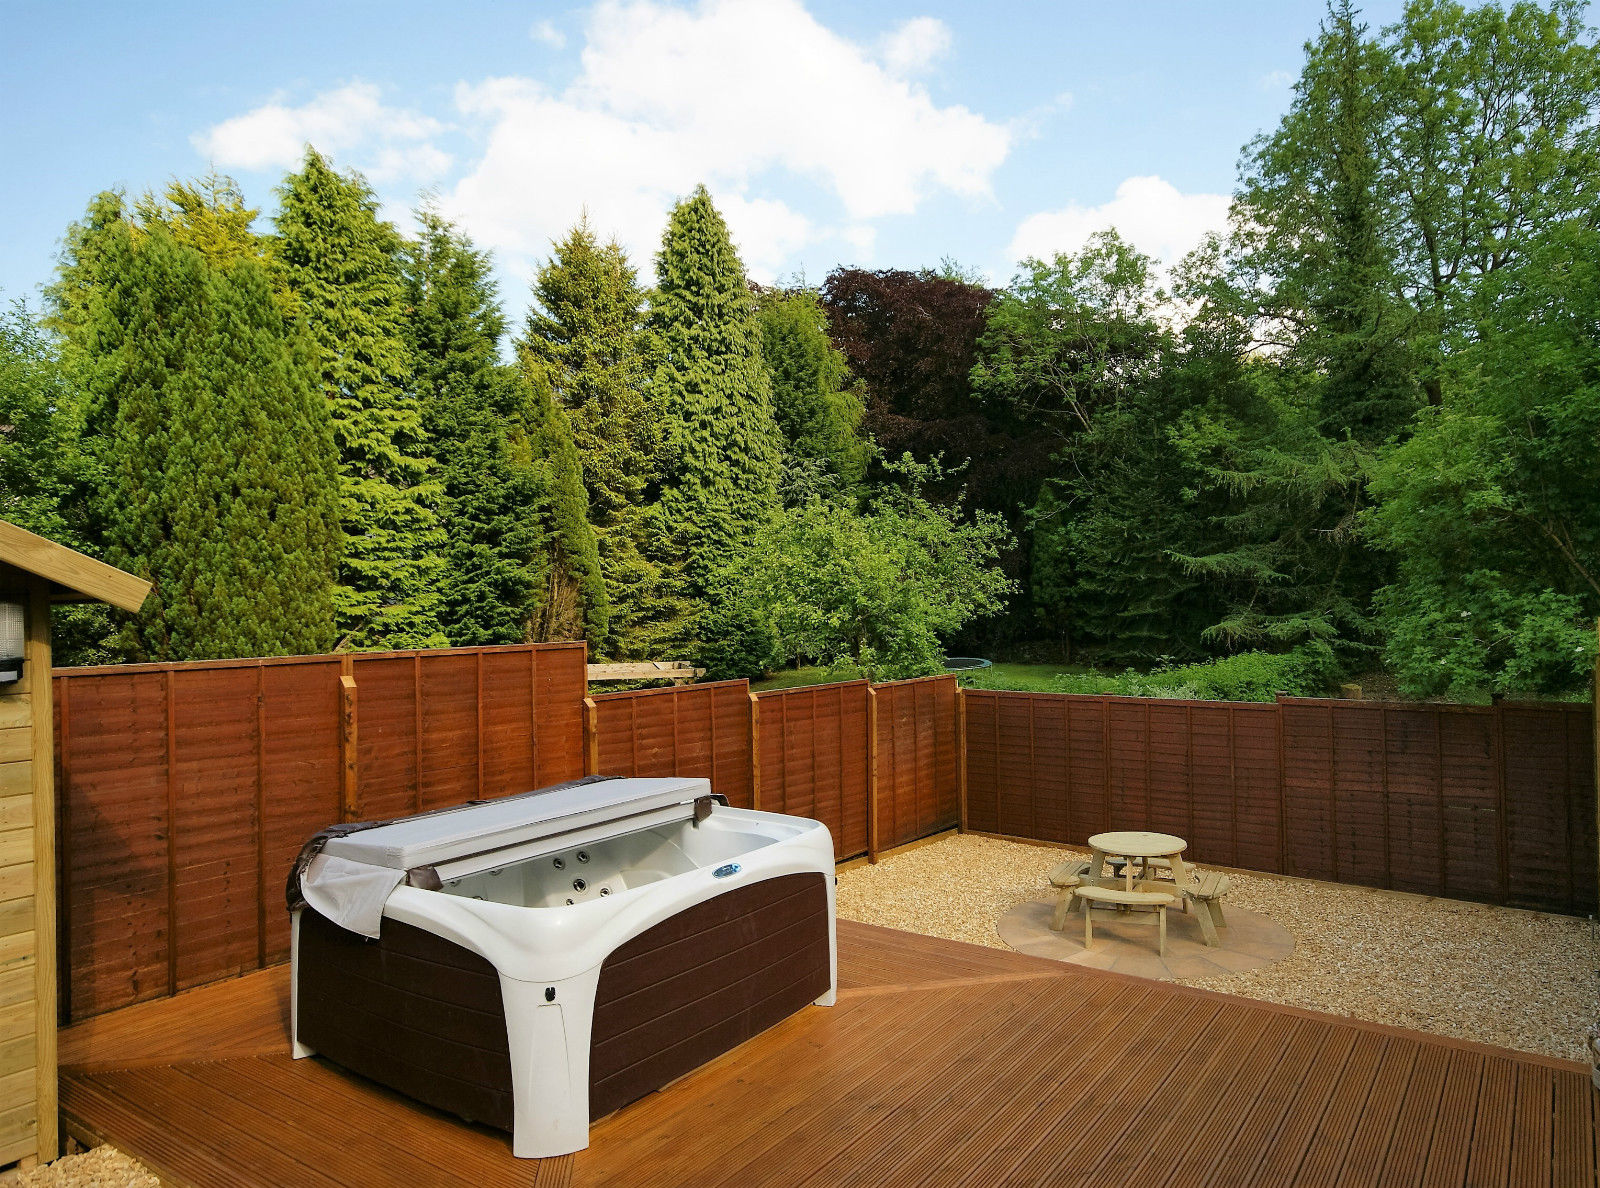 Luxury break with hot tub indoor pool leisure - Luxury cottages lake district swimming pool ...